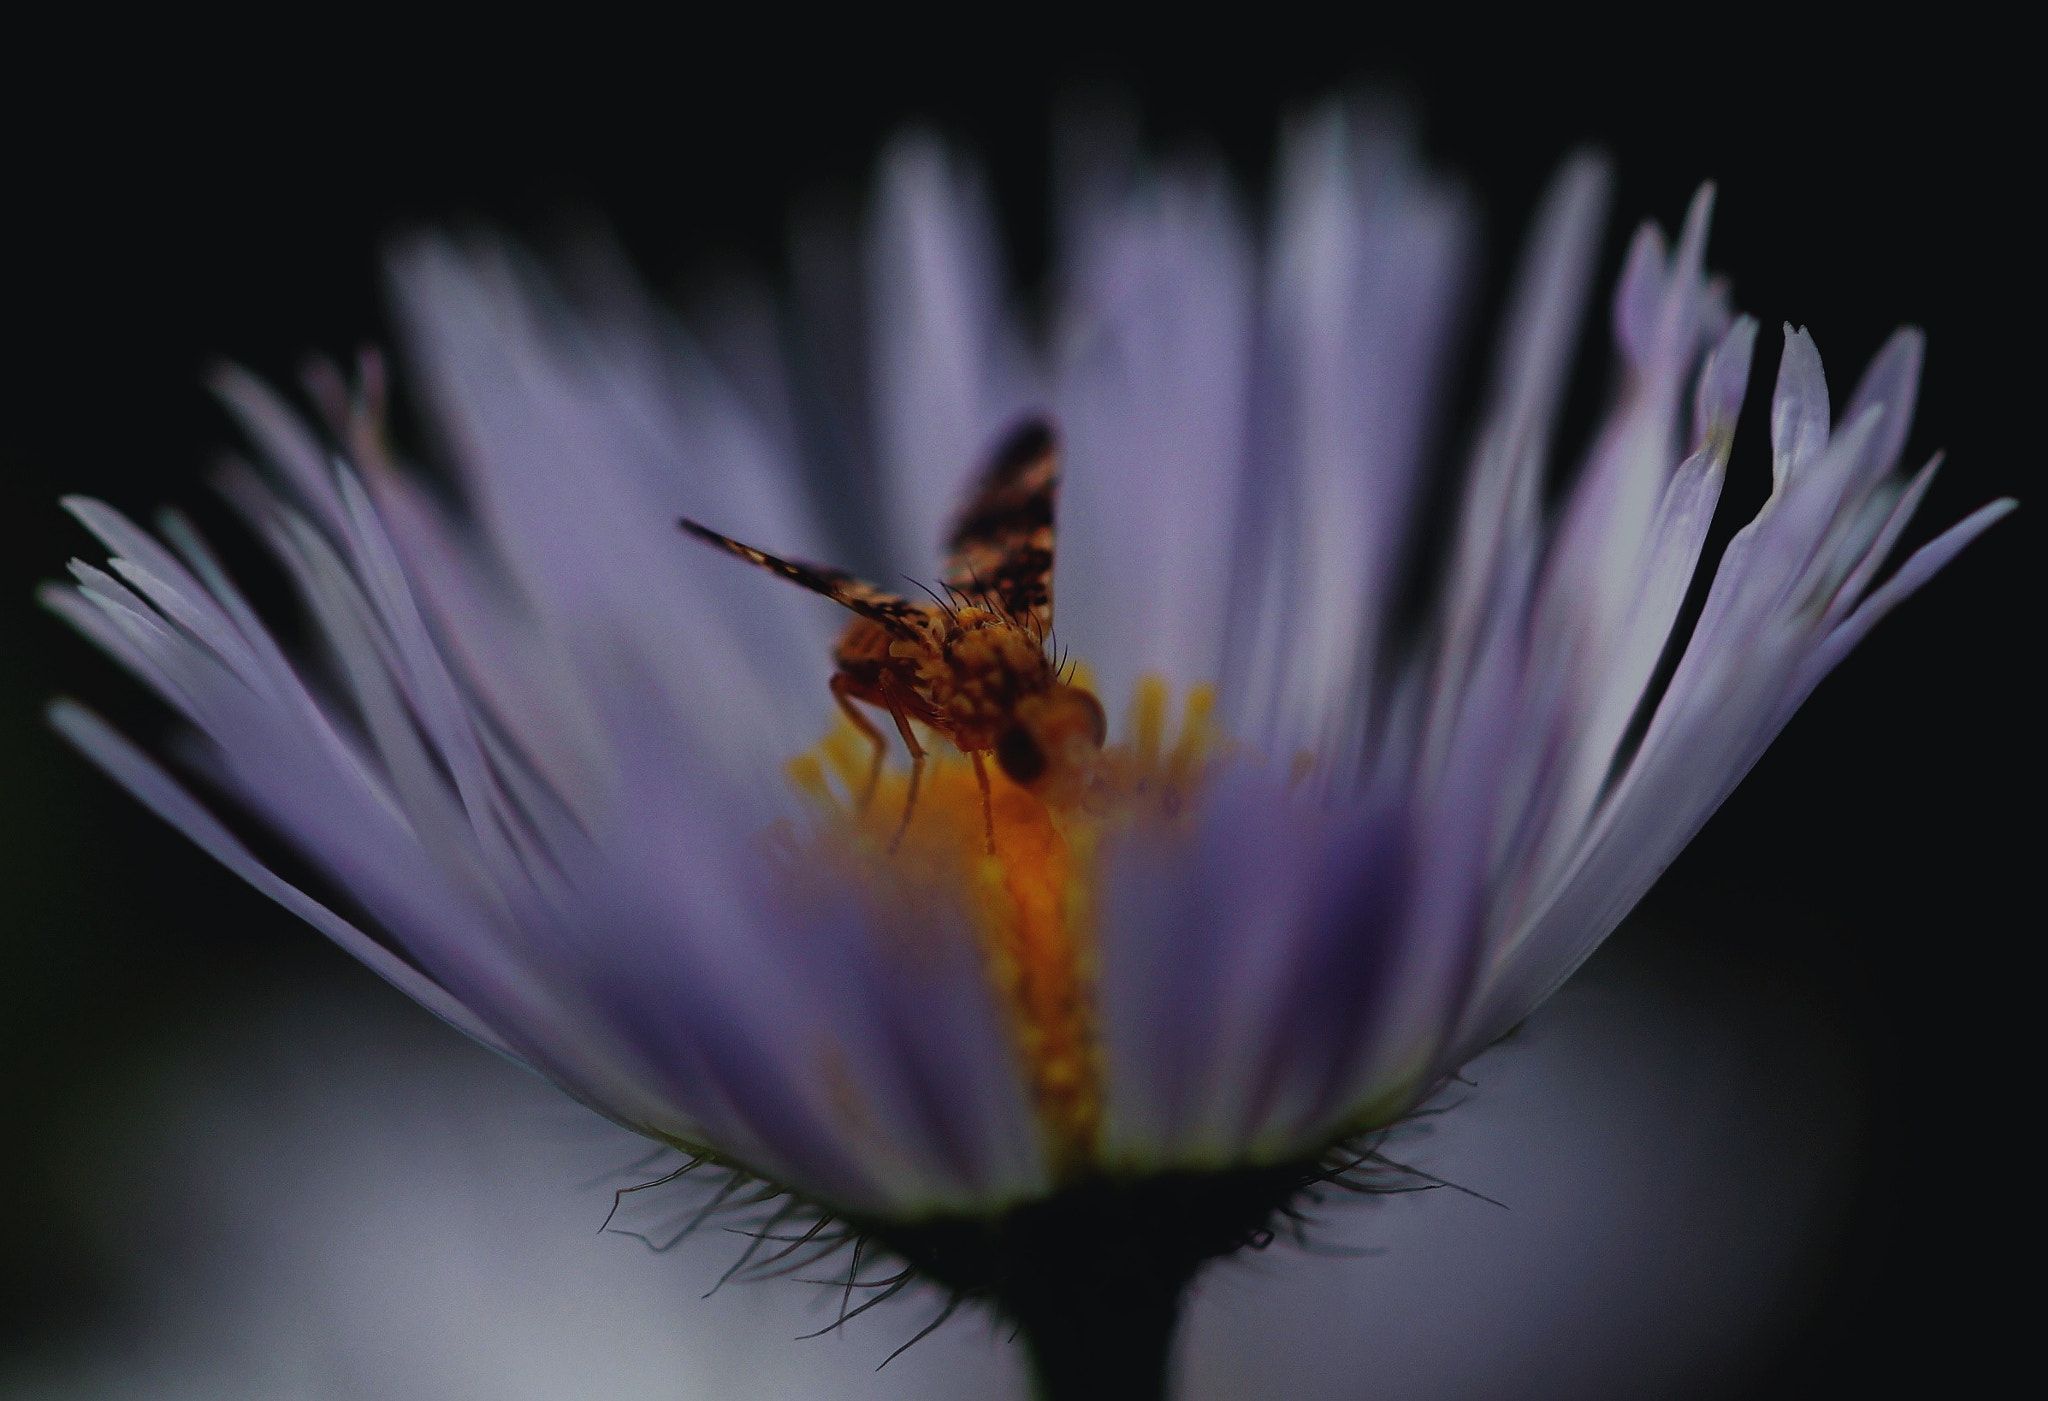 Photograph Hoverfly by Sabine Kraniger on 500px